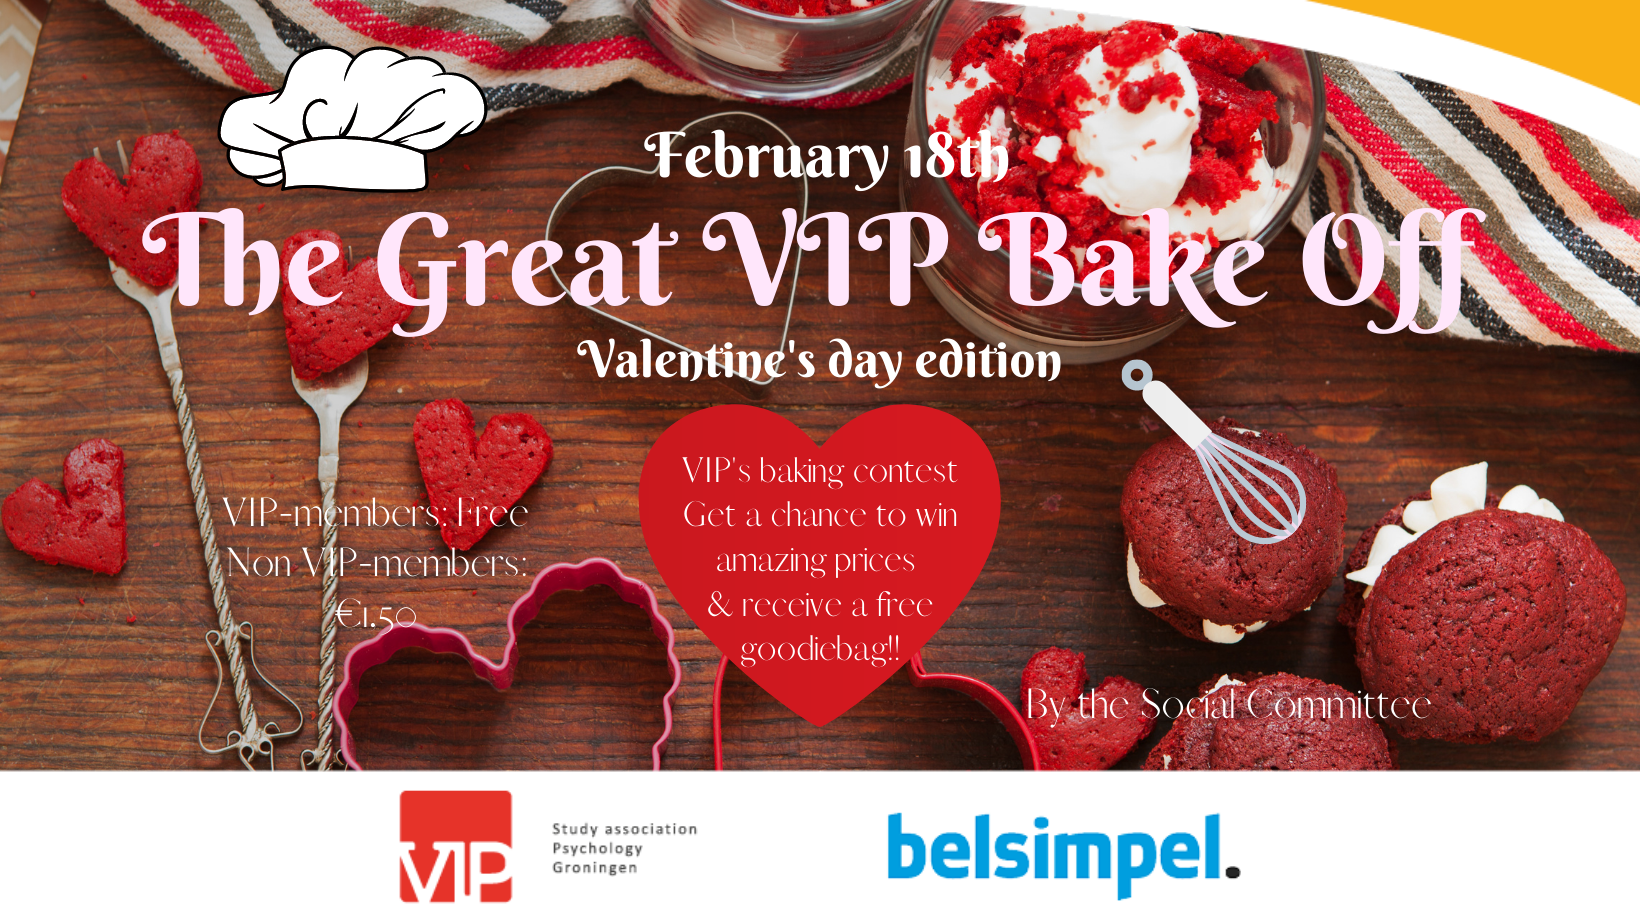 VIP: The Great VIP Bake Off